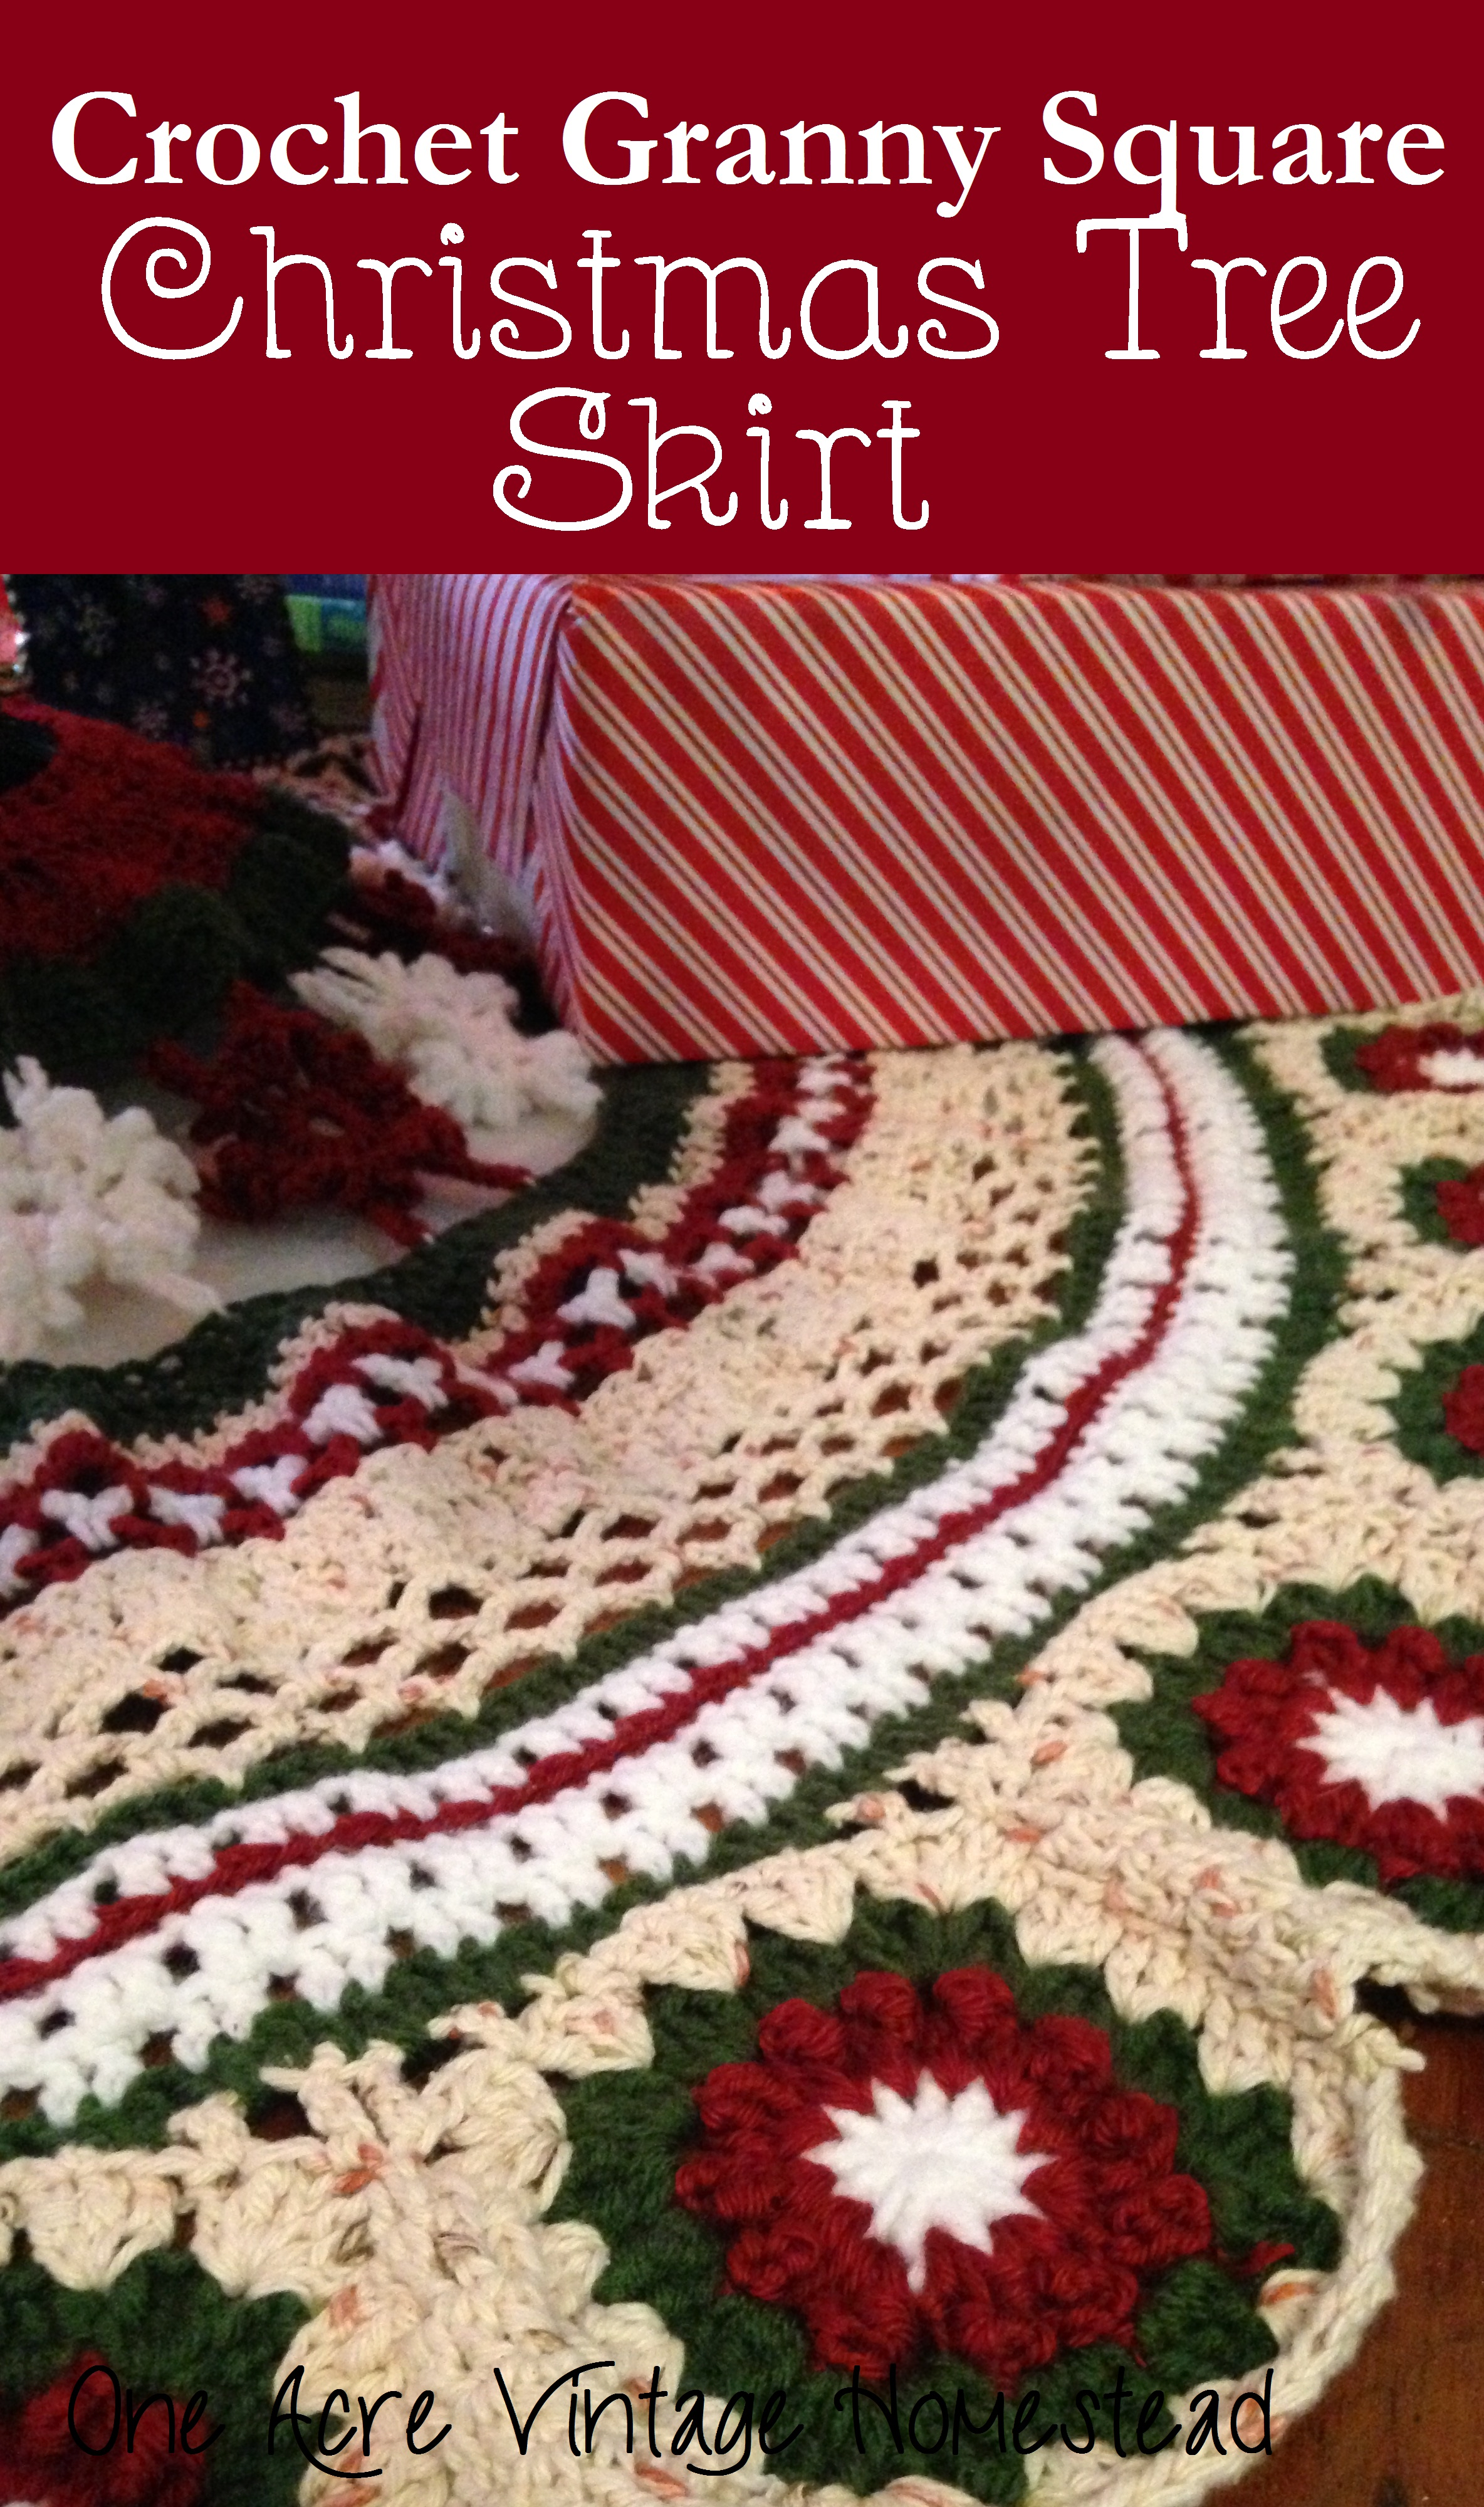 Crochet granny square christmas tree skirt ⋆ one acre